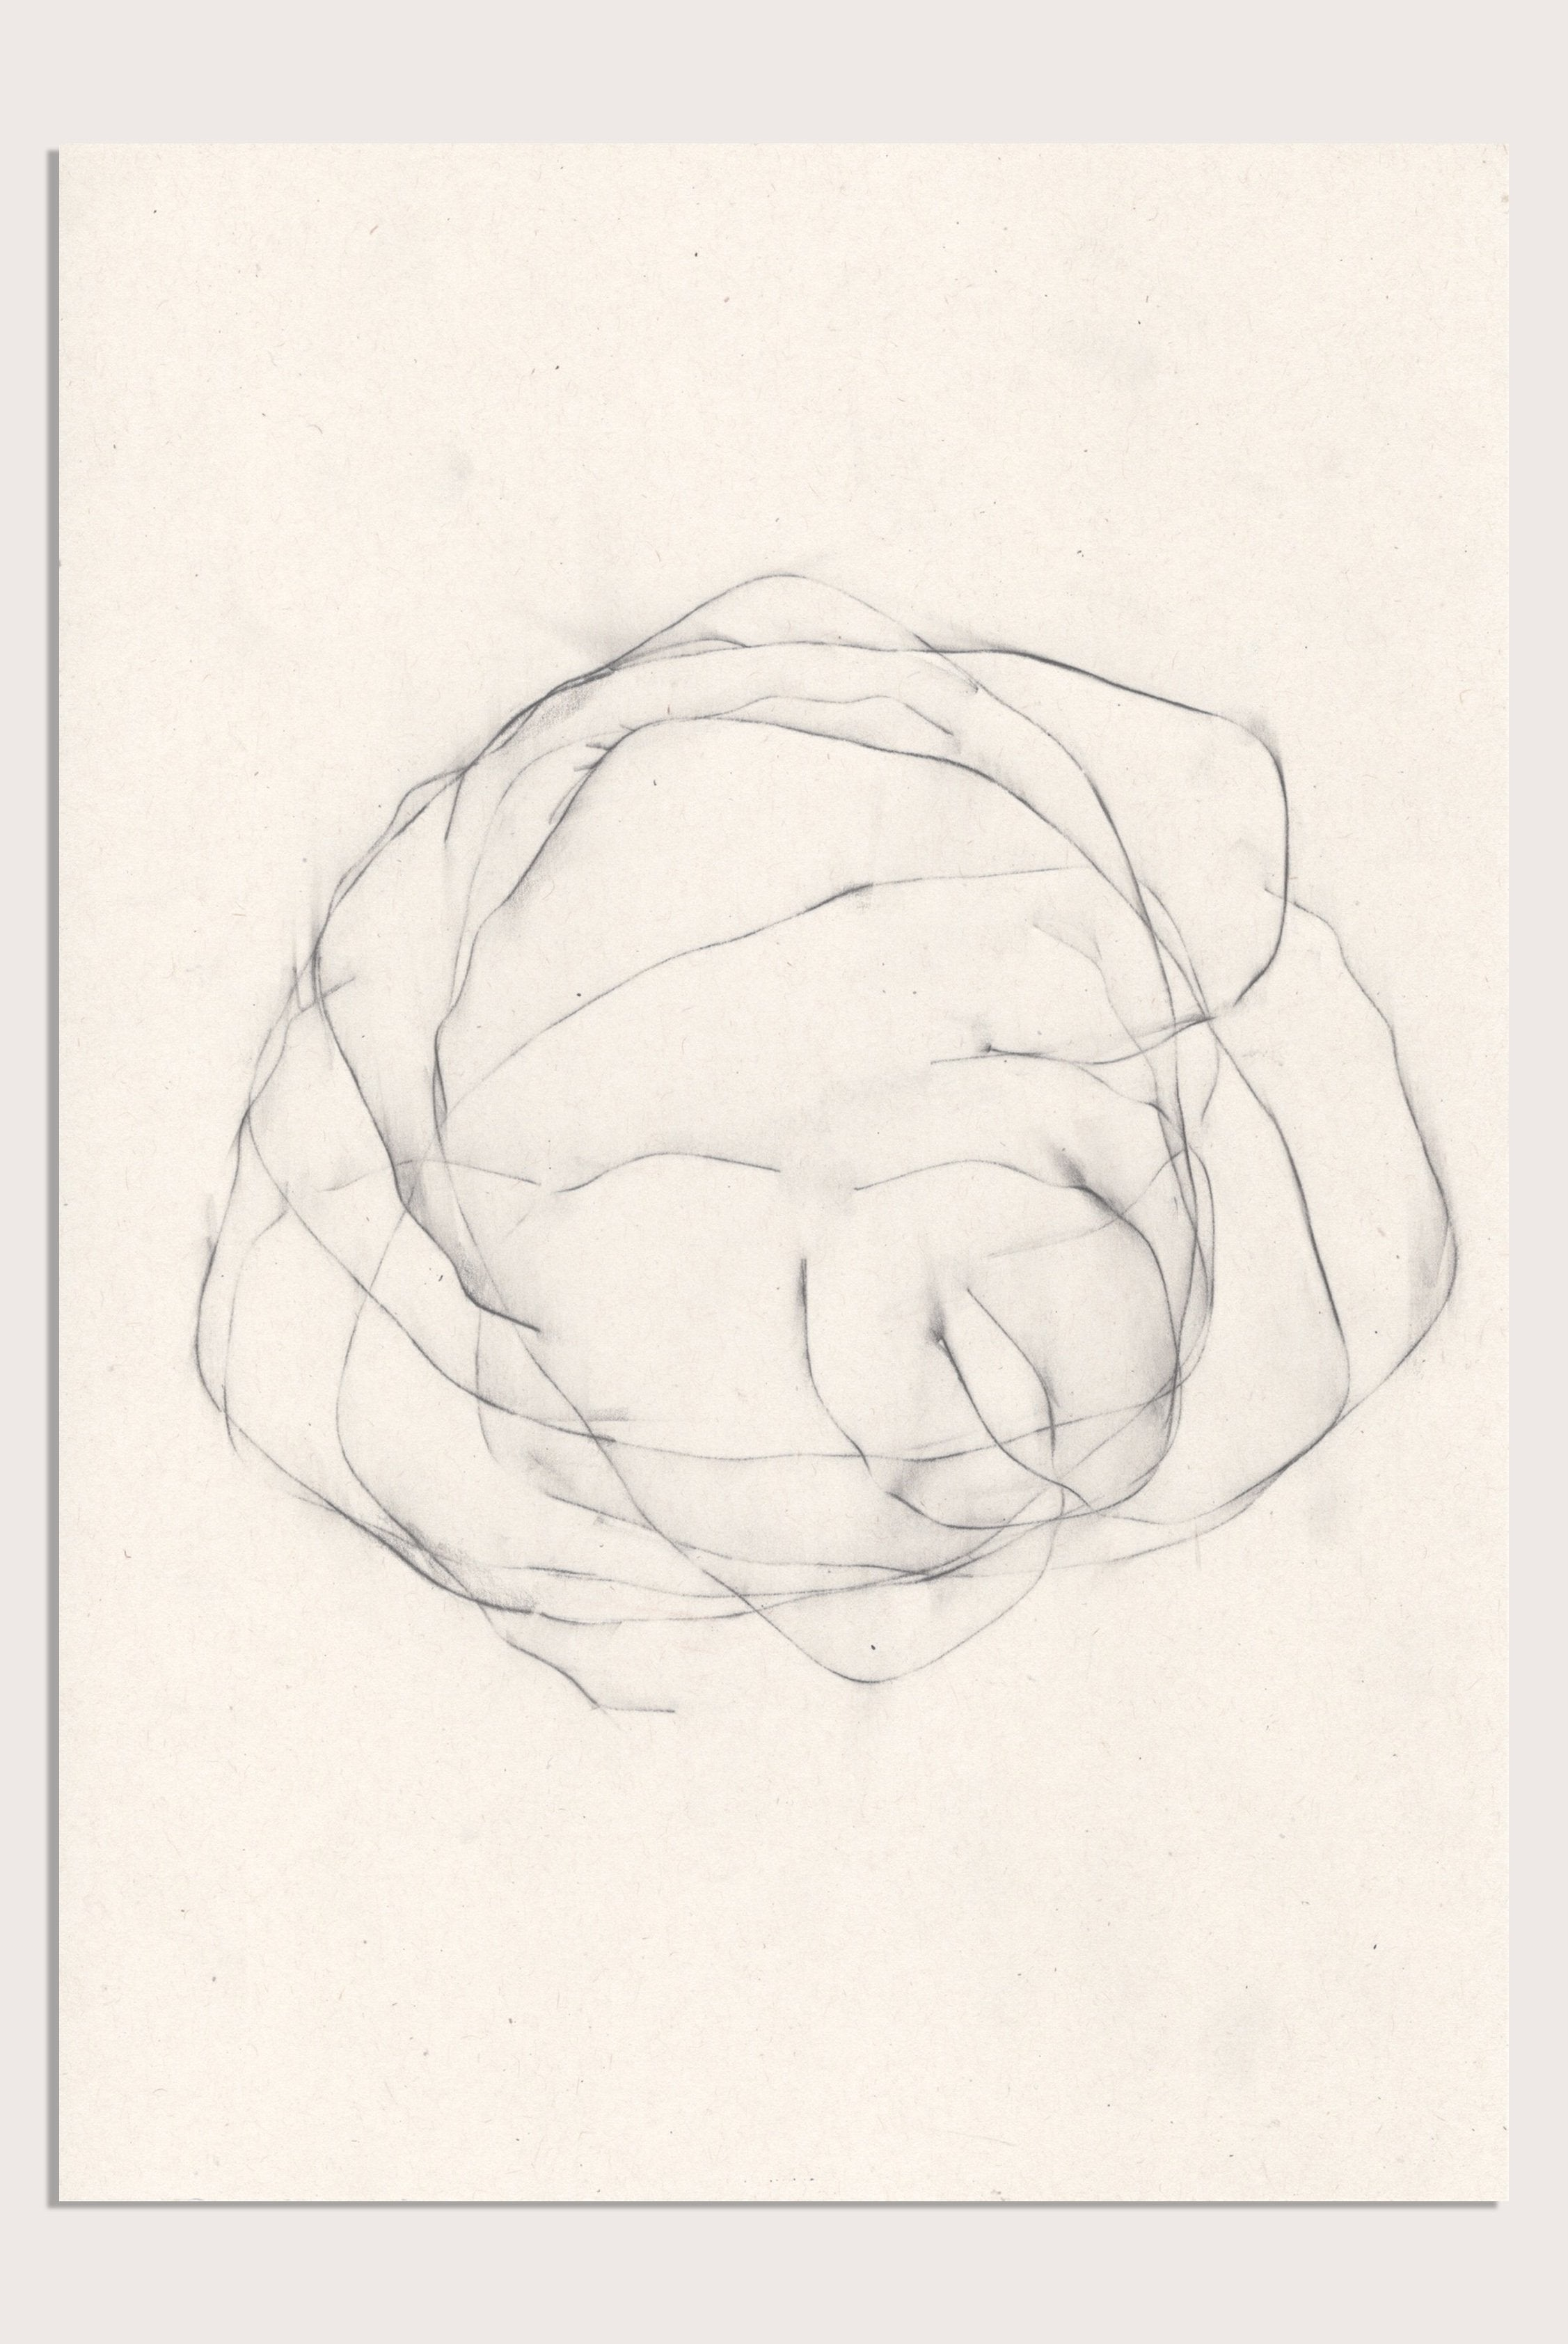 'Unsettled X', an abstract, minimalist drawing by contemporary emerging artist Kayleigh Harris